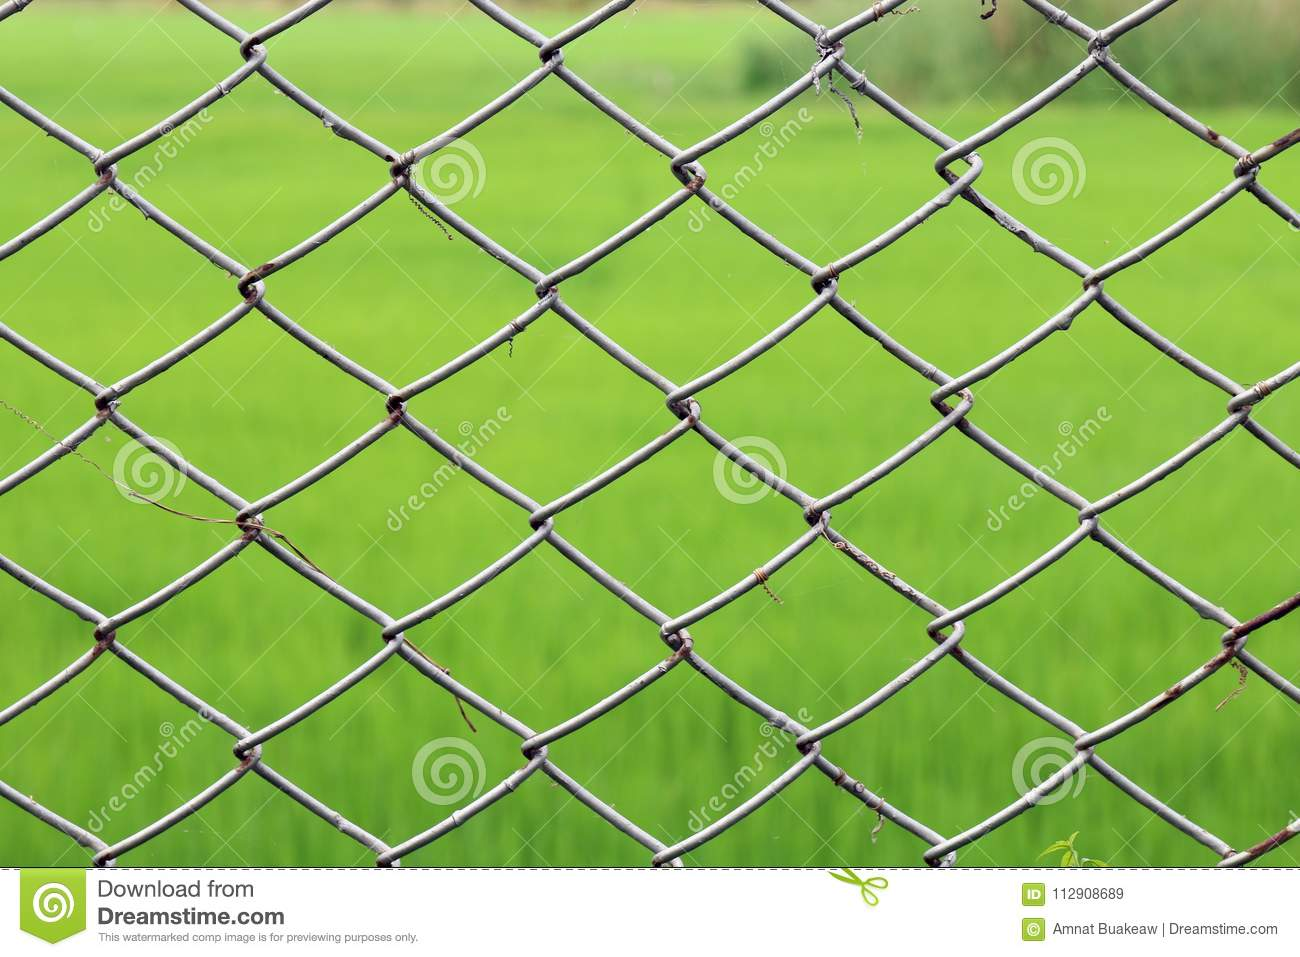 Metal Netting, Mesh Fence Iron Rusty Barbed Wire Detention Center ...